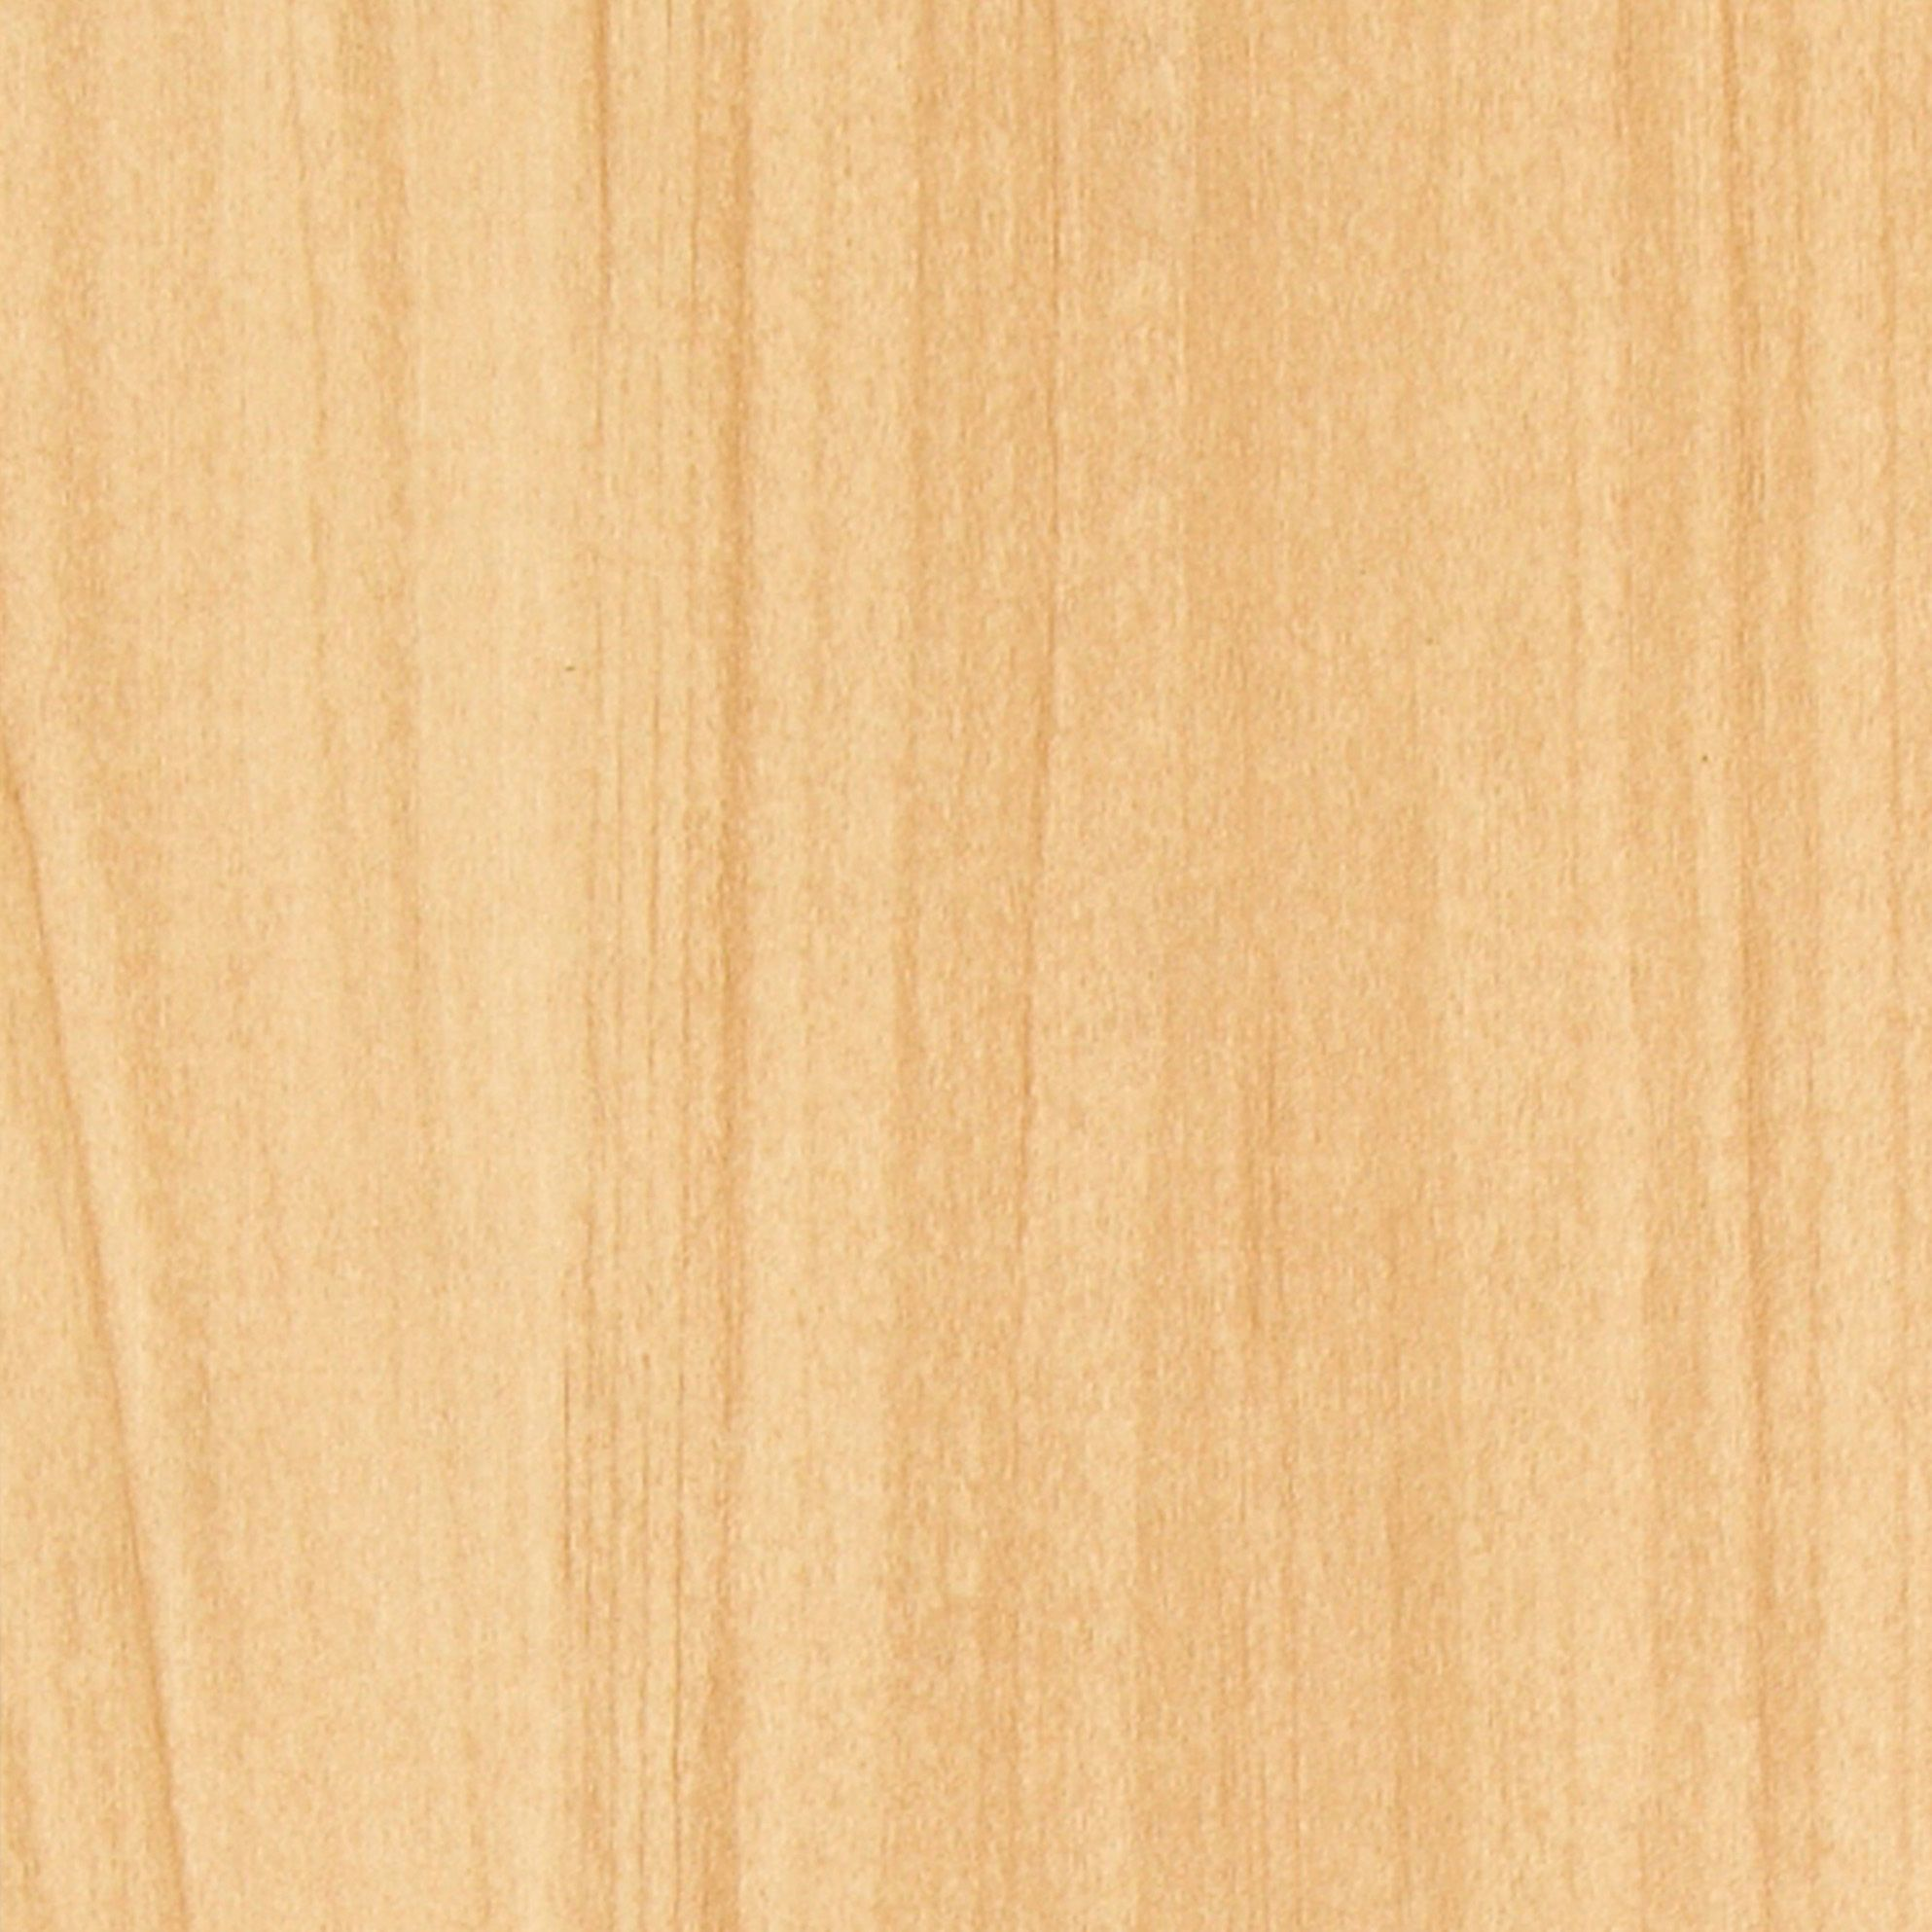 Self Adhesive Natural Wood Effect Vinyl Plank 083m Pack